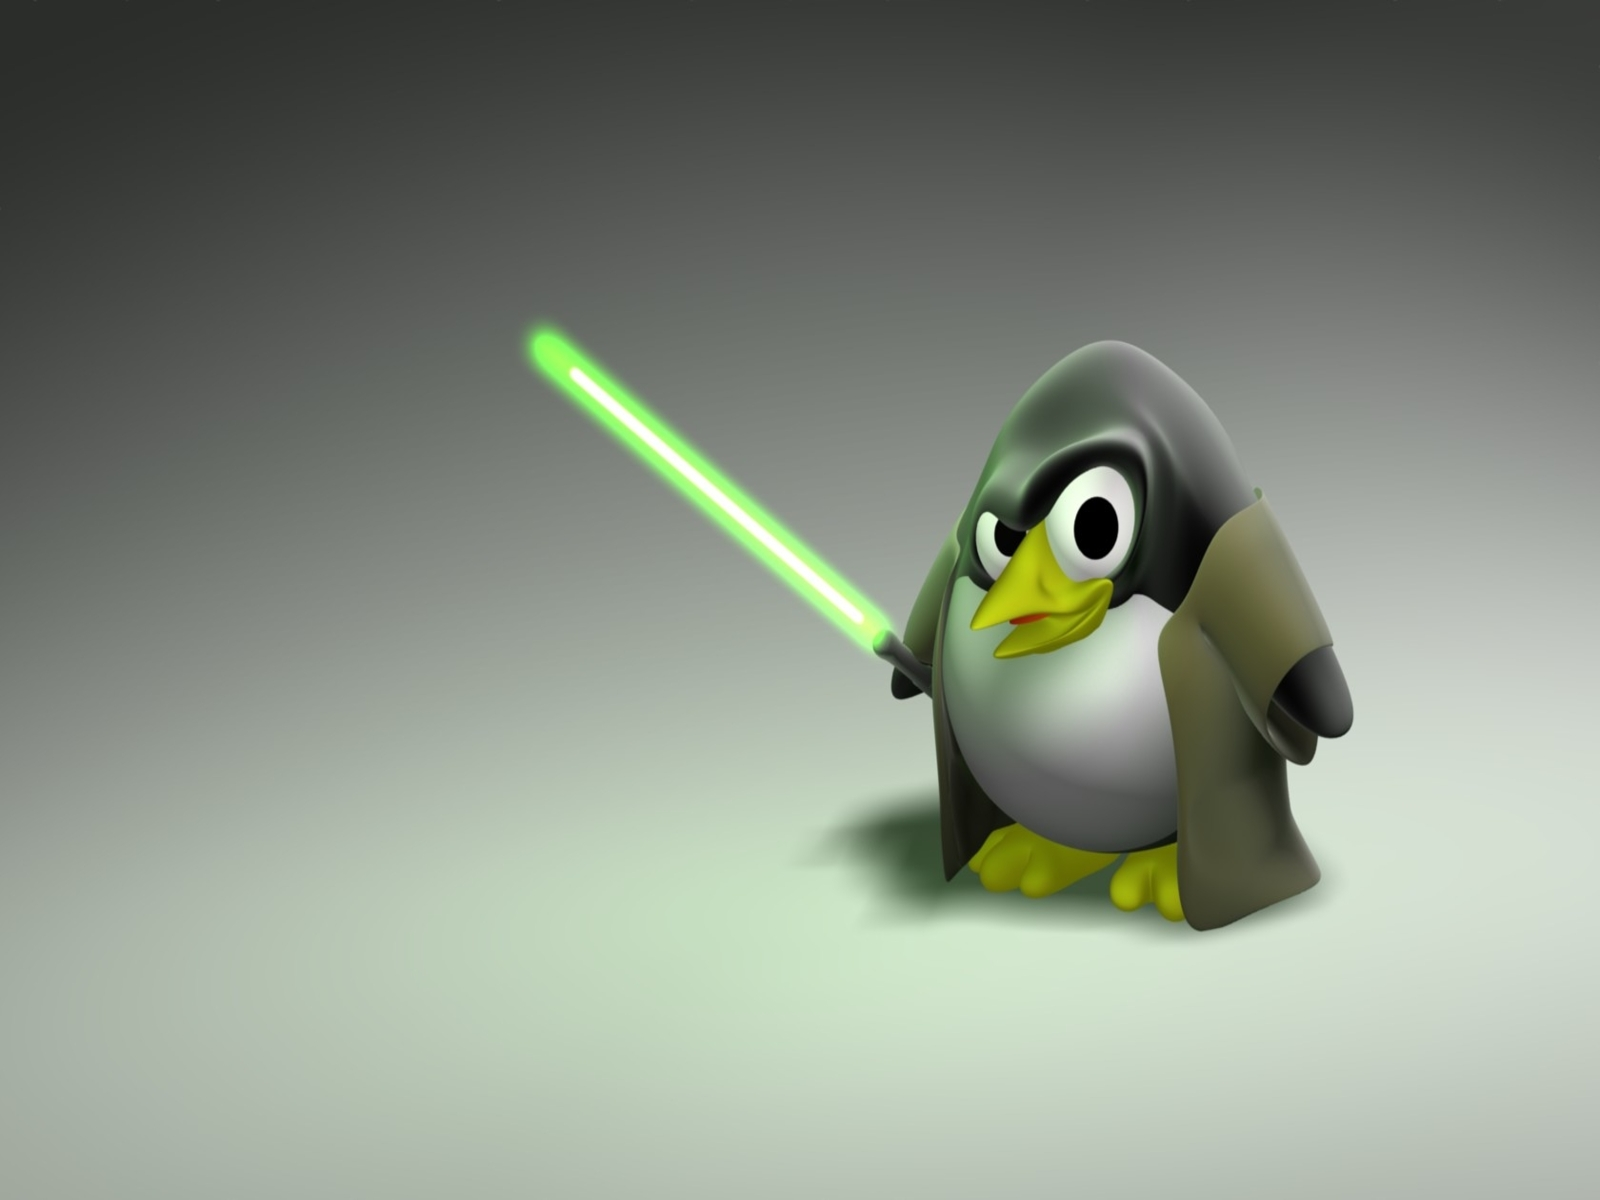 Desktop Wallpaper Jeday Linux Penguin Mascot HD Wallpaper 1600x1200